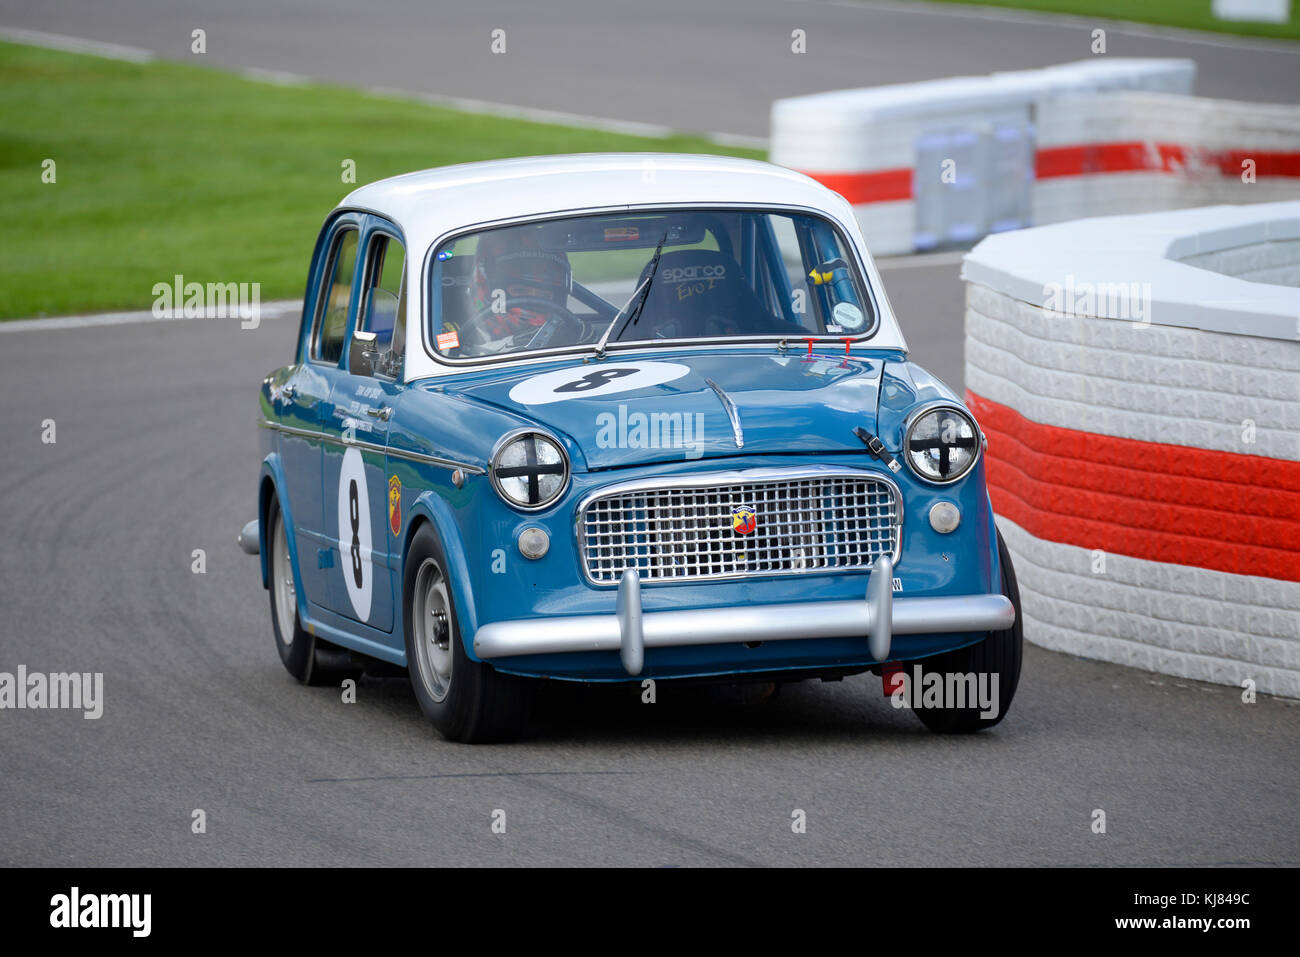 Fiat Abarth Stock Photos Amp Fiat Abarth Stock Images Alamy